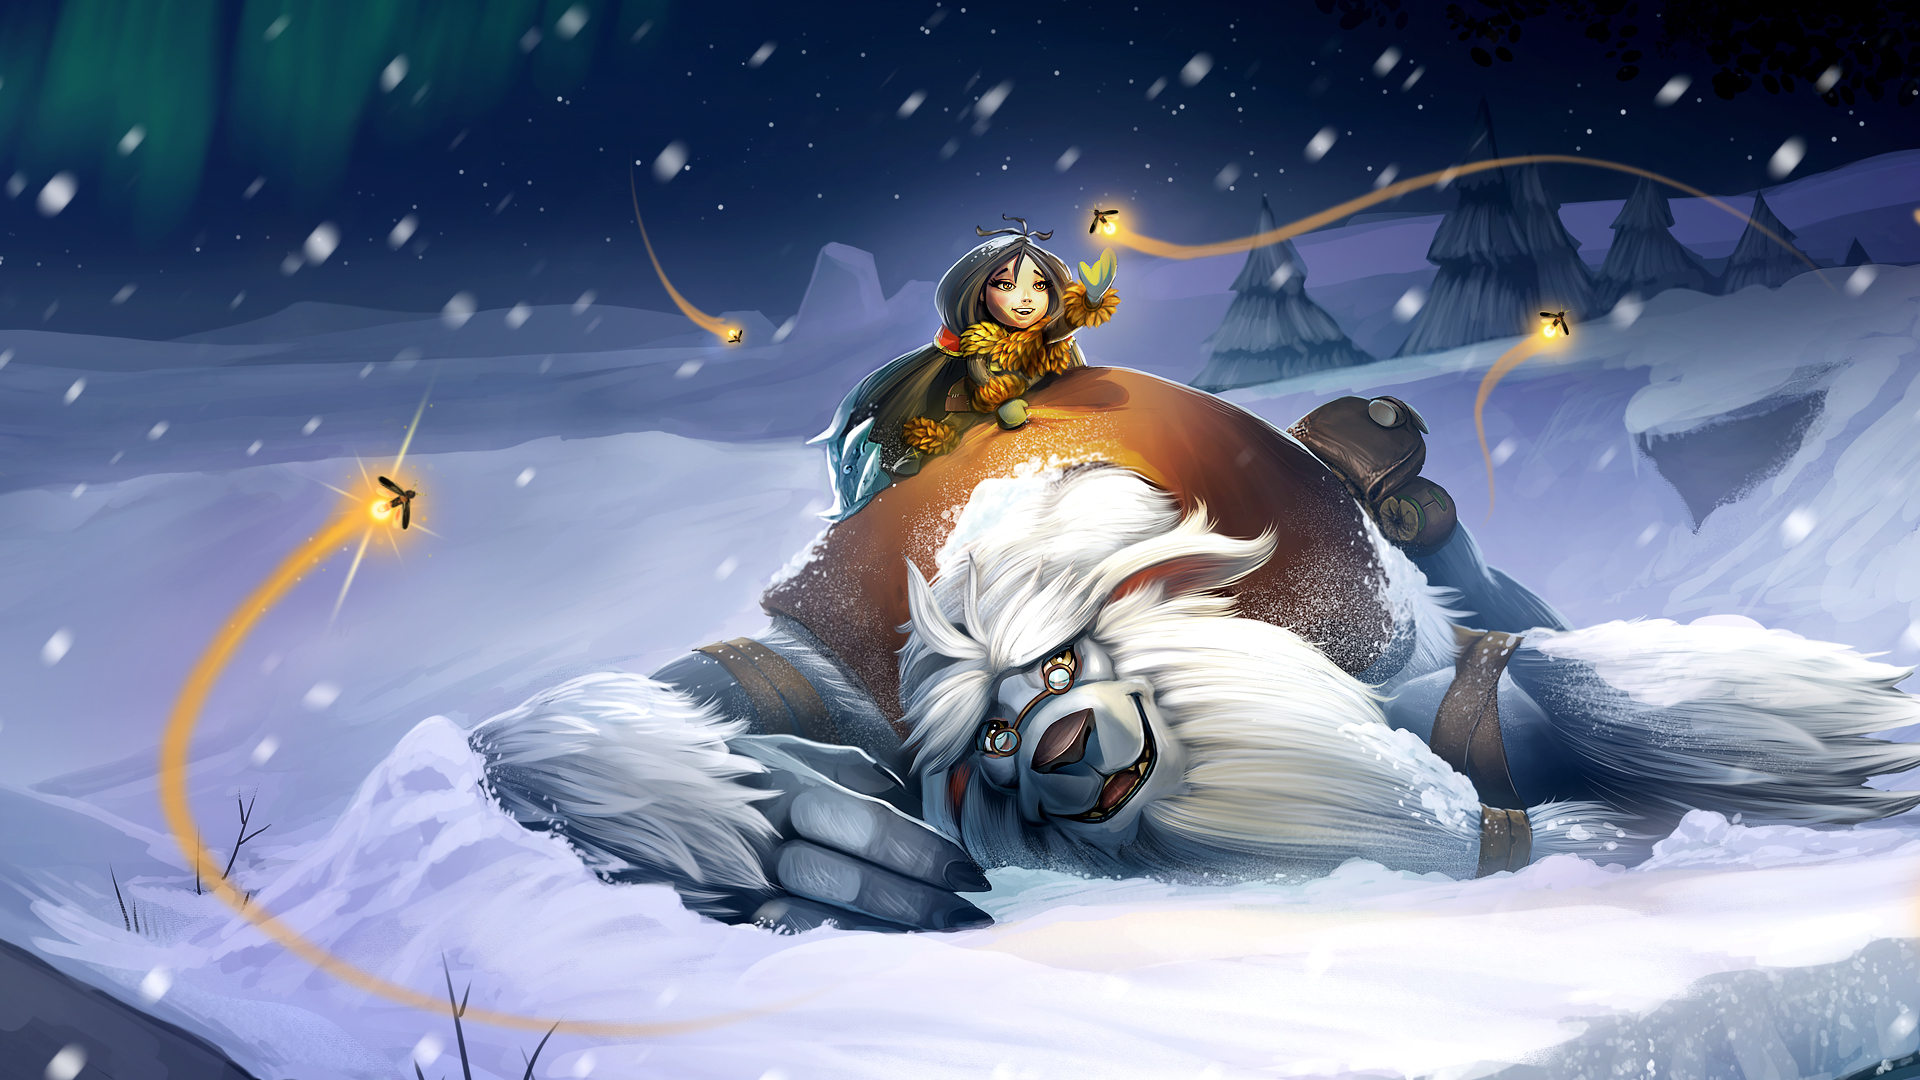 Press Release: RuneScape gets into the holiday spirit for